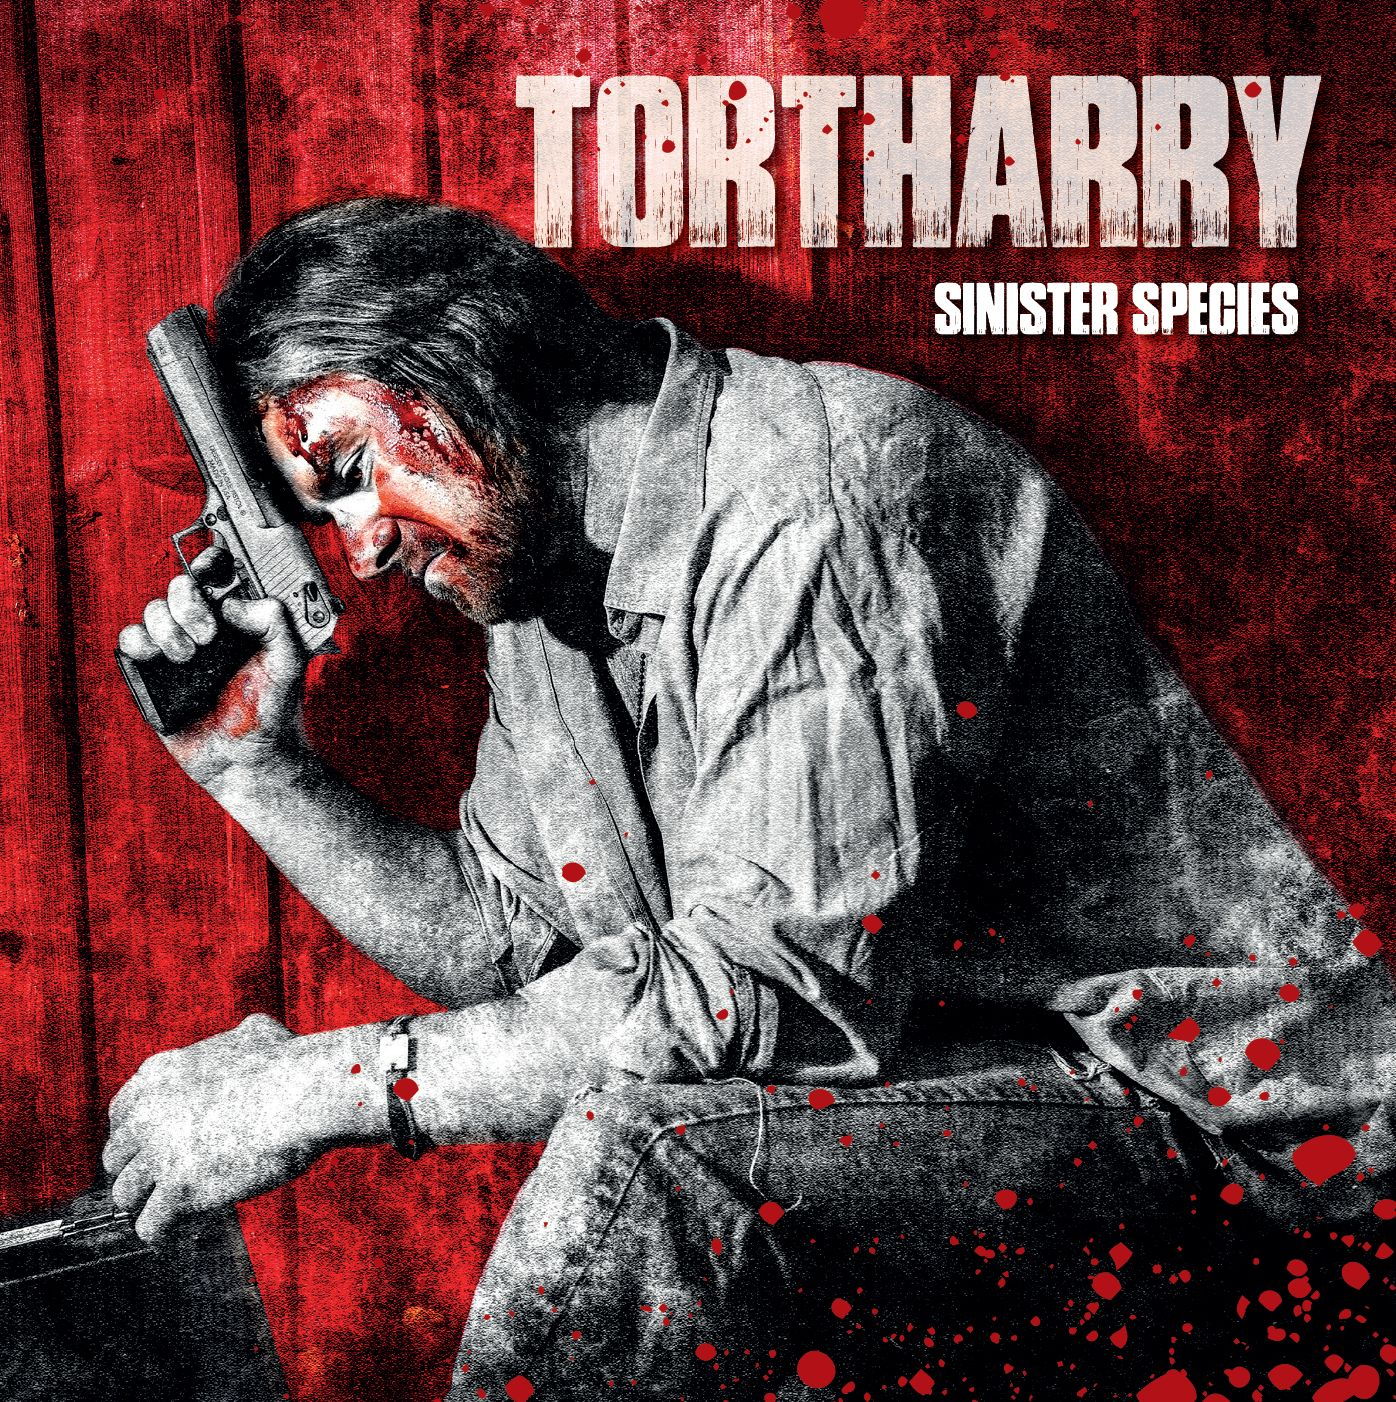 TORTHARRY Sinister Species (LP red)